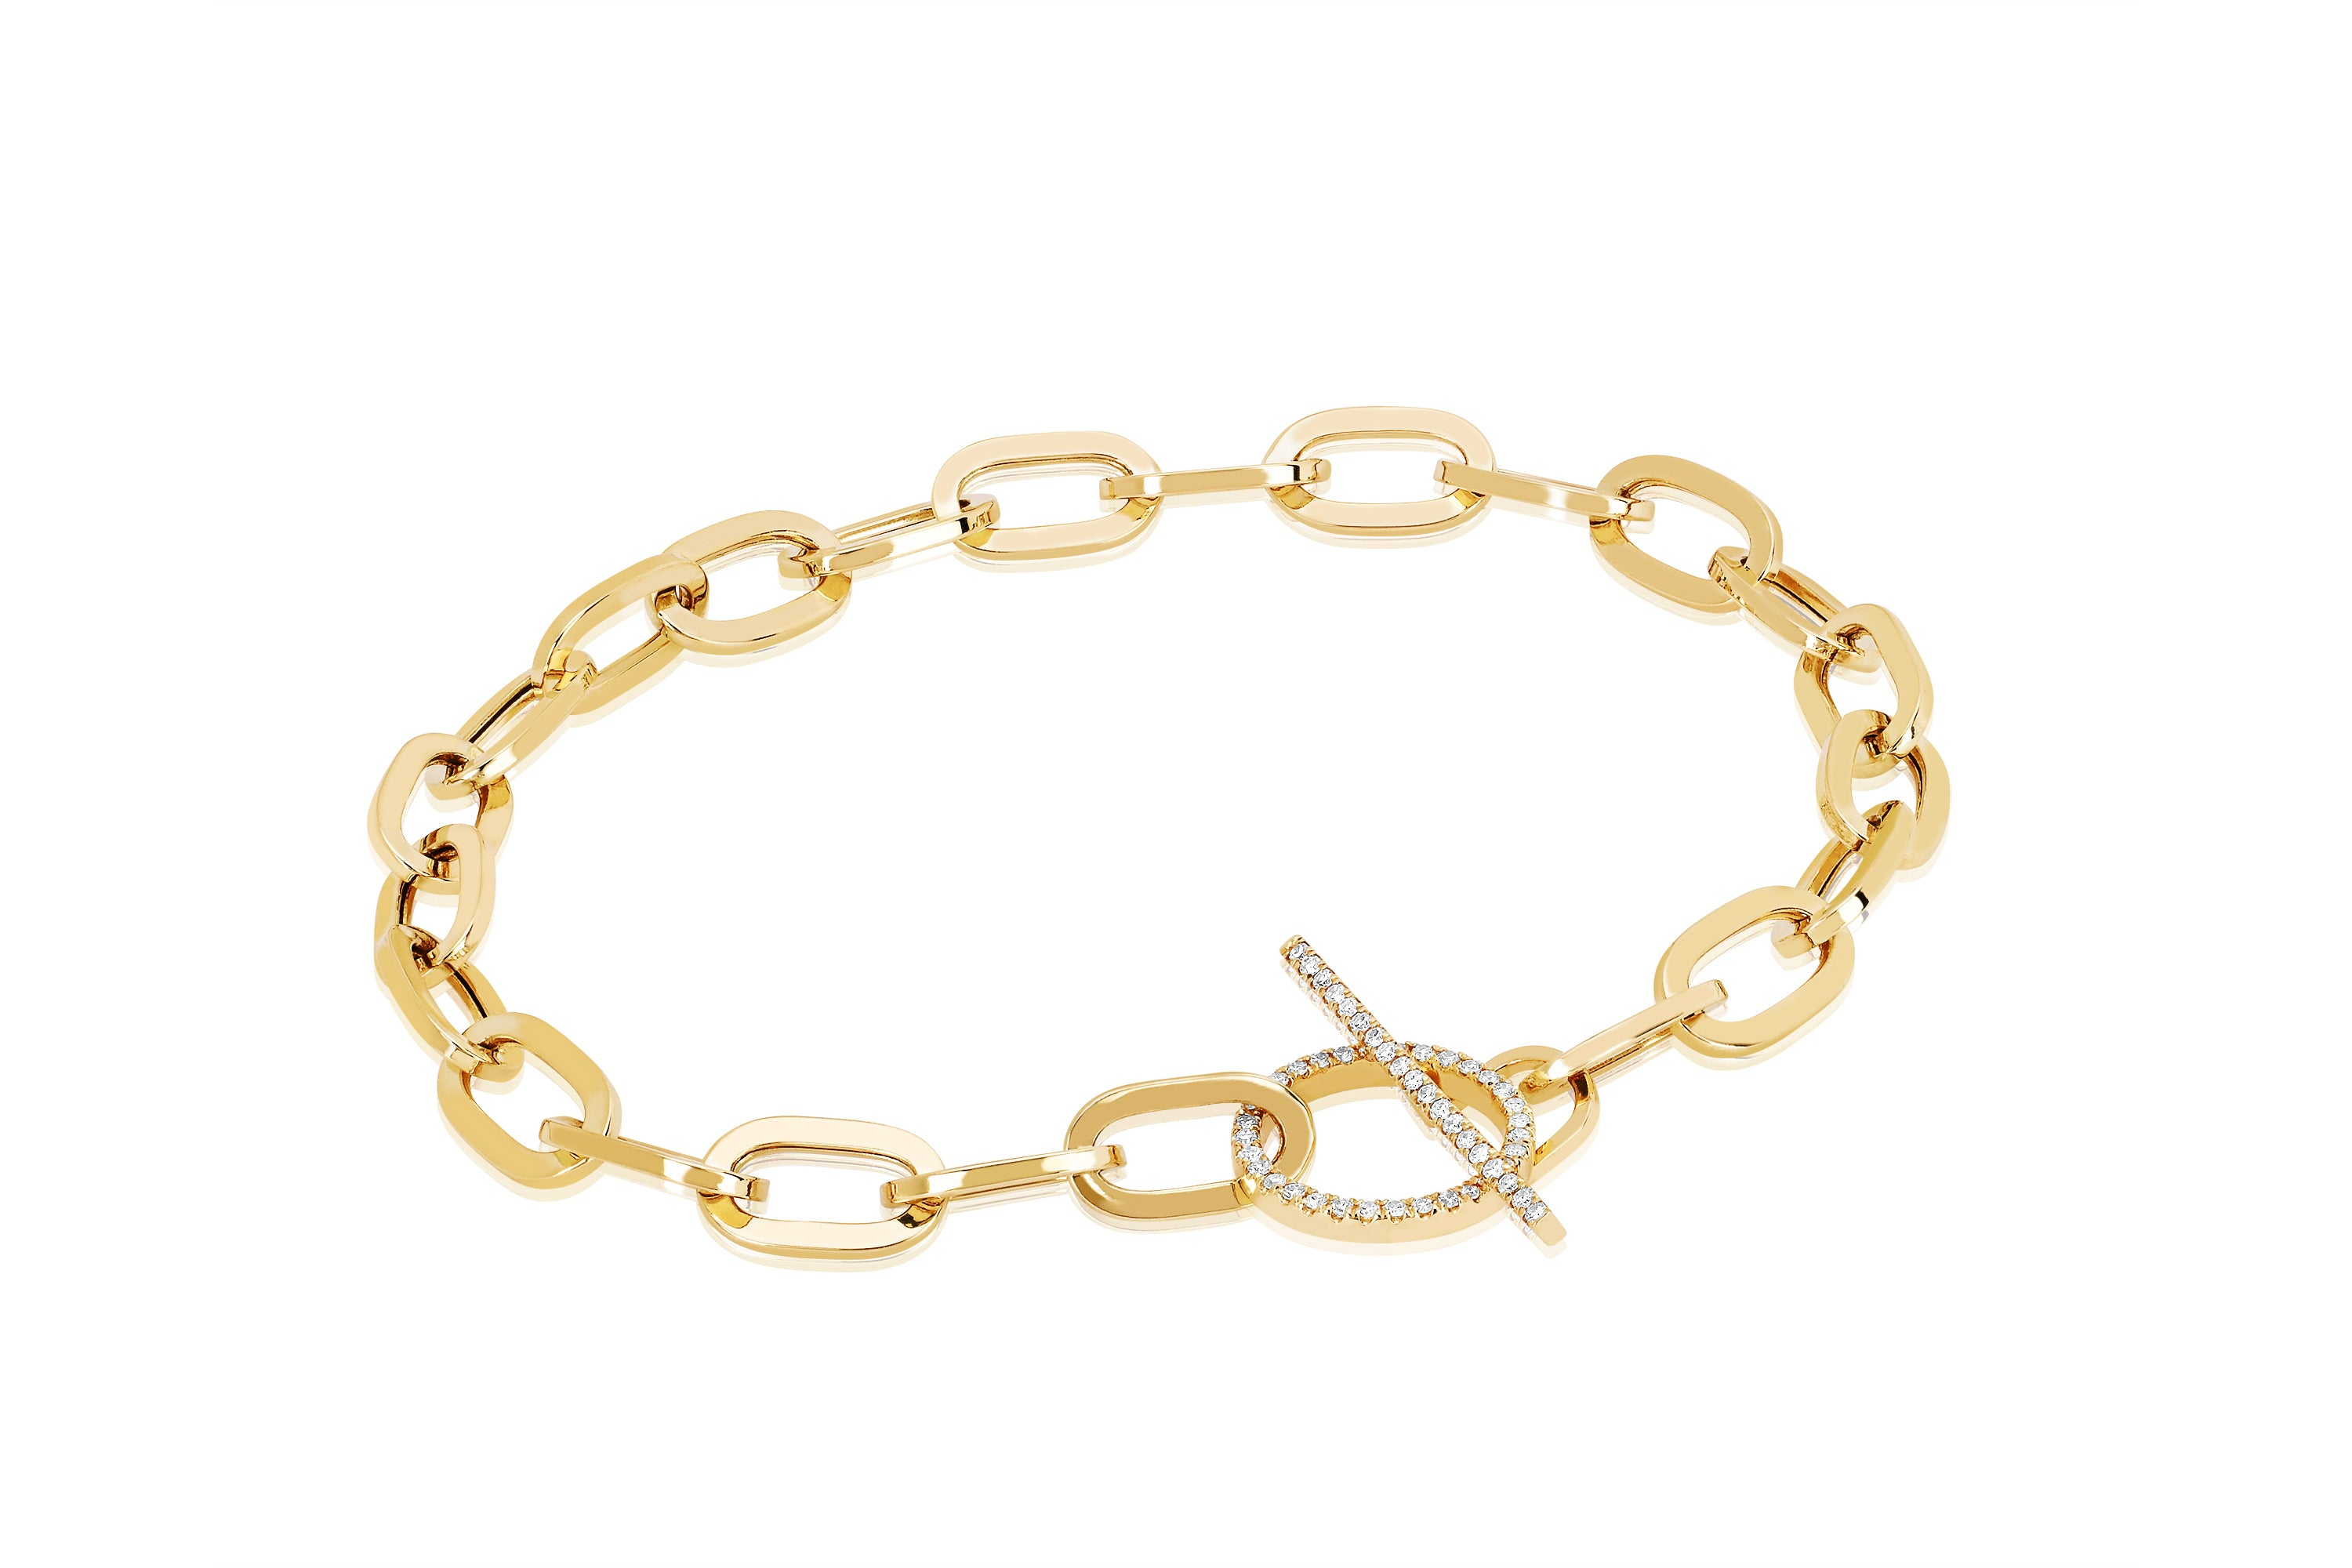 Jumbo Diamond Toggle Bracelet